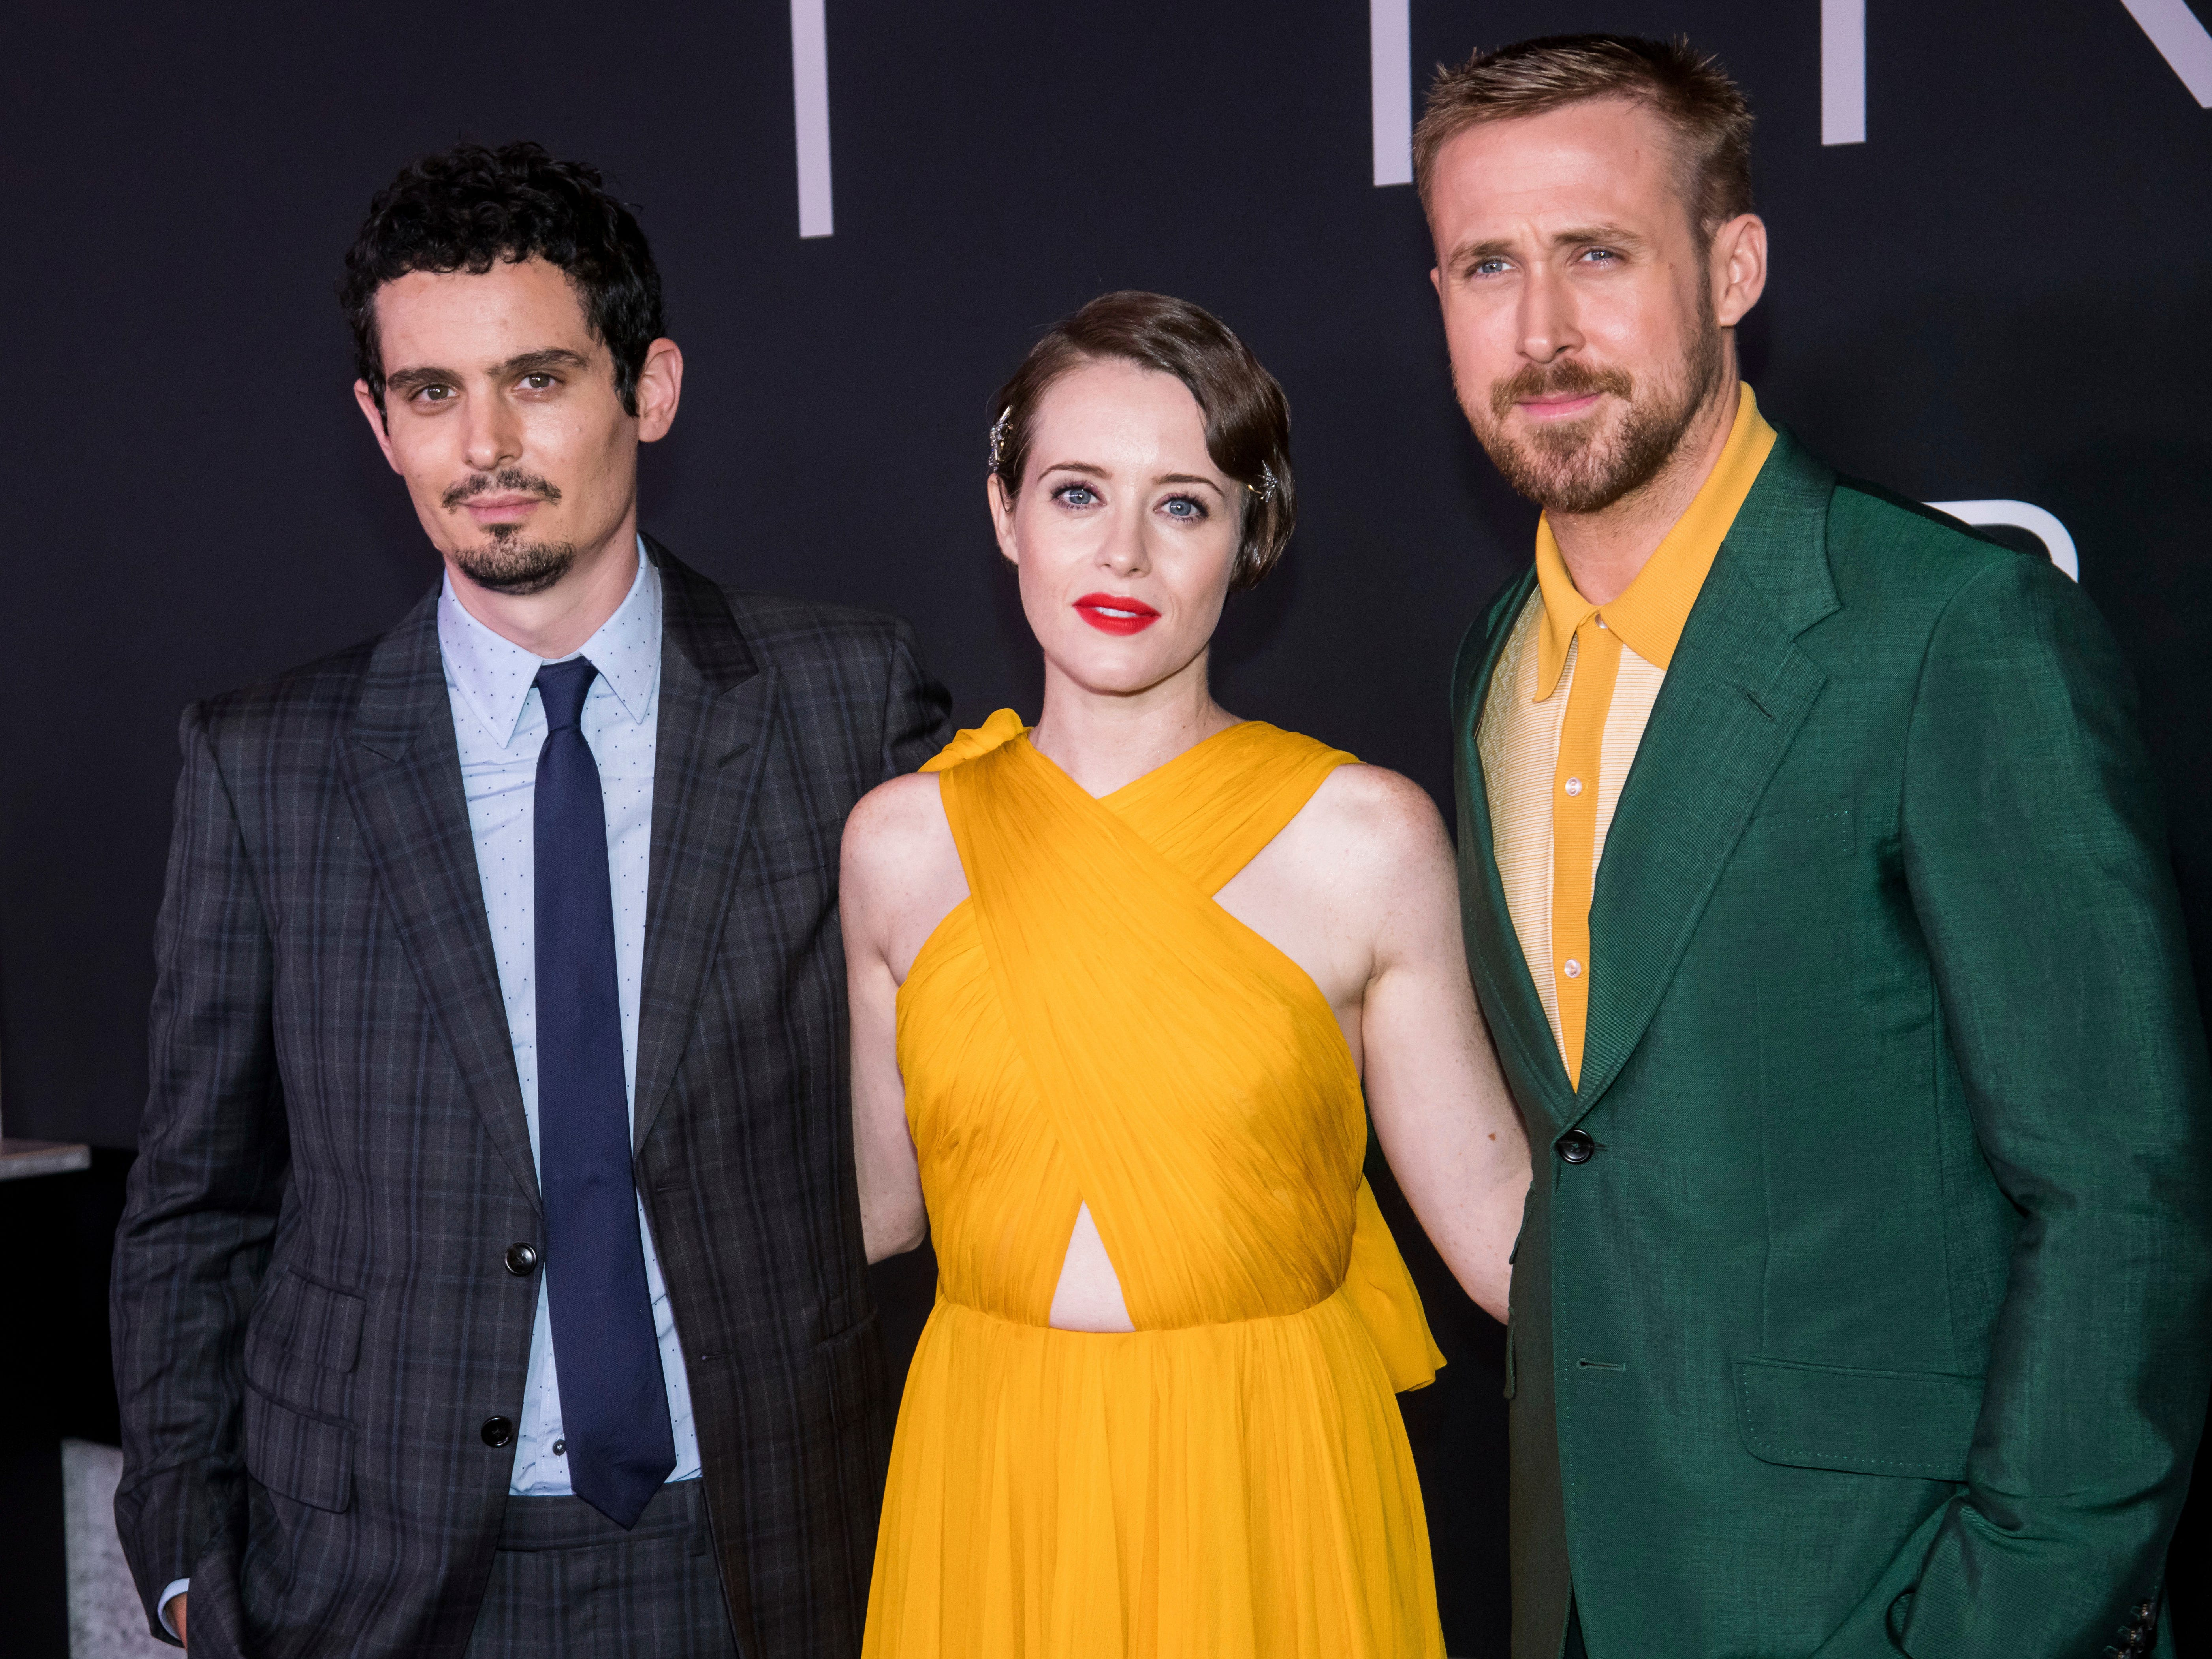 """Damien Chazelle, left, Claire Foy and Ryan Gosling attend the """"First Man"""" premiere at the National Air and Space Museum of the Smithsonian Institution on Thursday, Oct. 4, 2018, in Washington. (Photo by Charles Sykes/Invision/AP) ORG XMIT: NYCS109"""